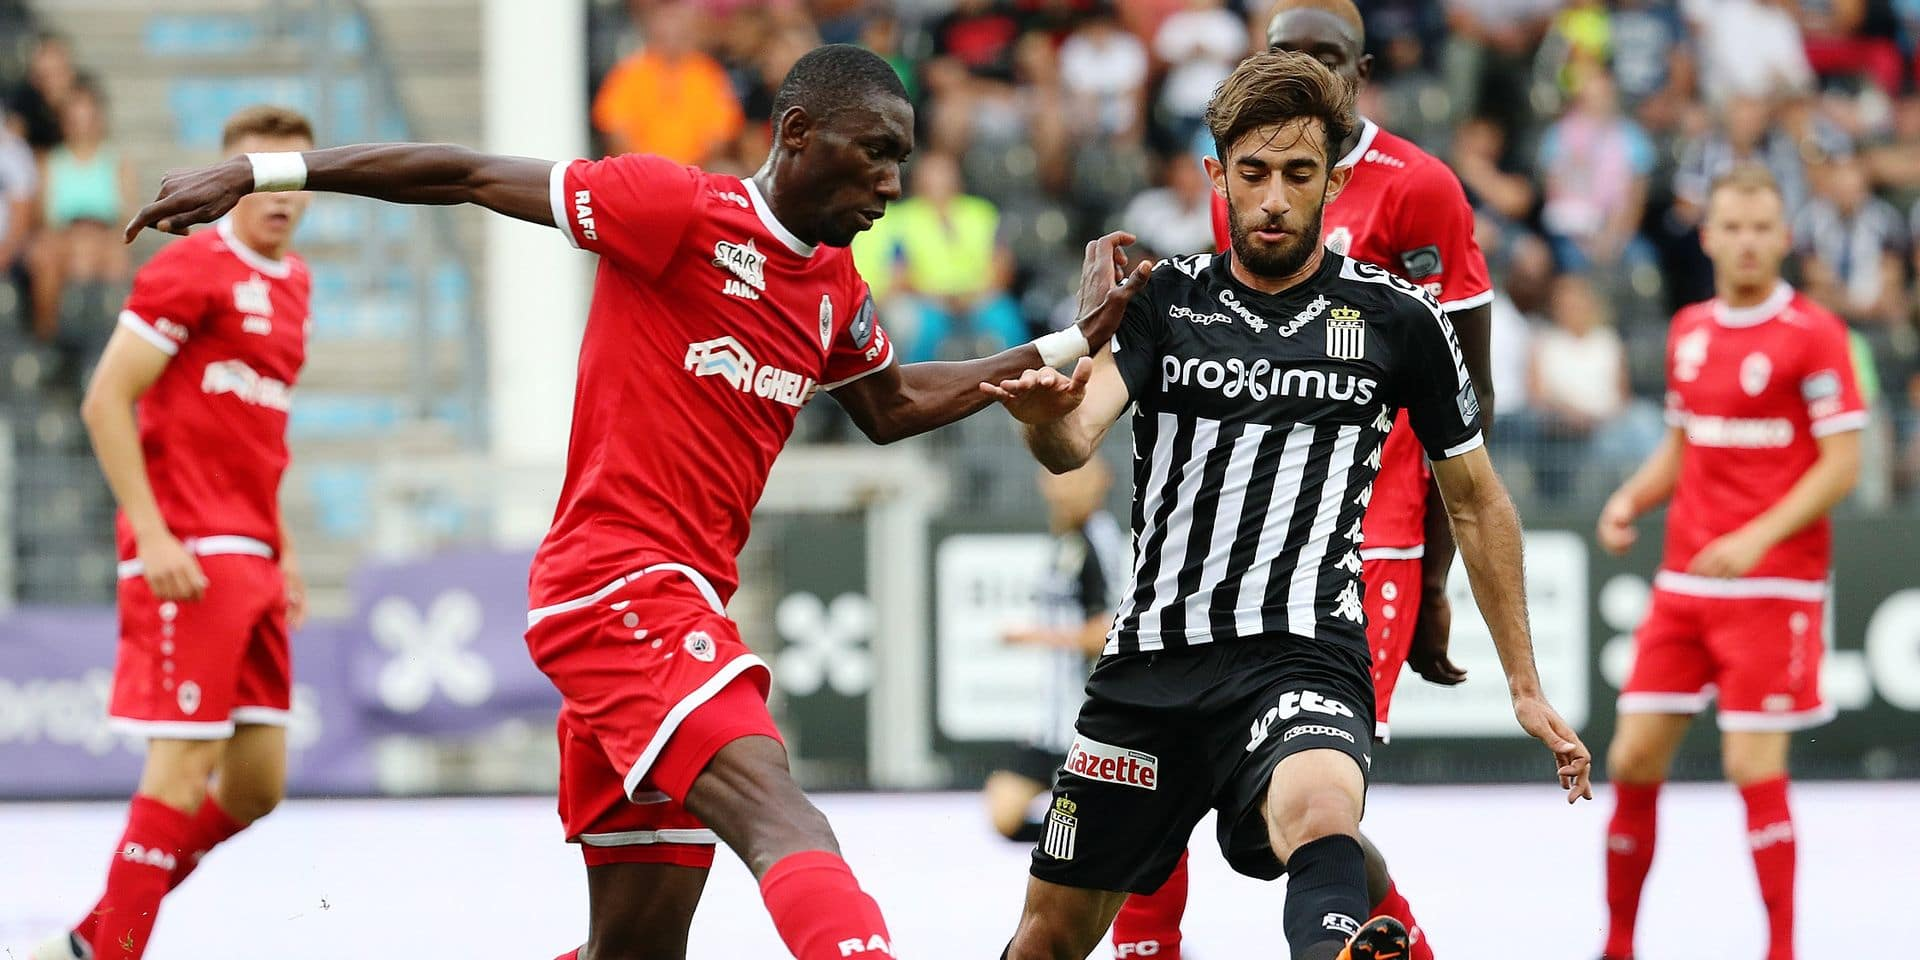 Antwerp's William Owusu Acheampong and Charleroi's Ali Gholizadeh fight for the ball during the Jupiler Pro League match between Sporting Charleroi and Royal Antwerp FC, in Charleroi, Sunday 29 July 2018, on the first day of the Jupiler Pro League, the Belgian soccer championship season 2018-2019. BELGA PHOTO VIRGINIE LEFOUR